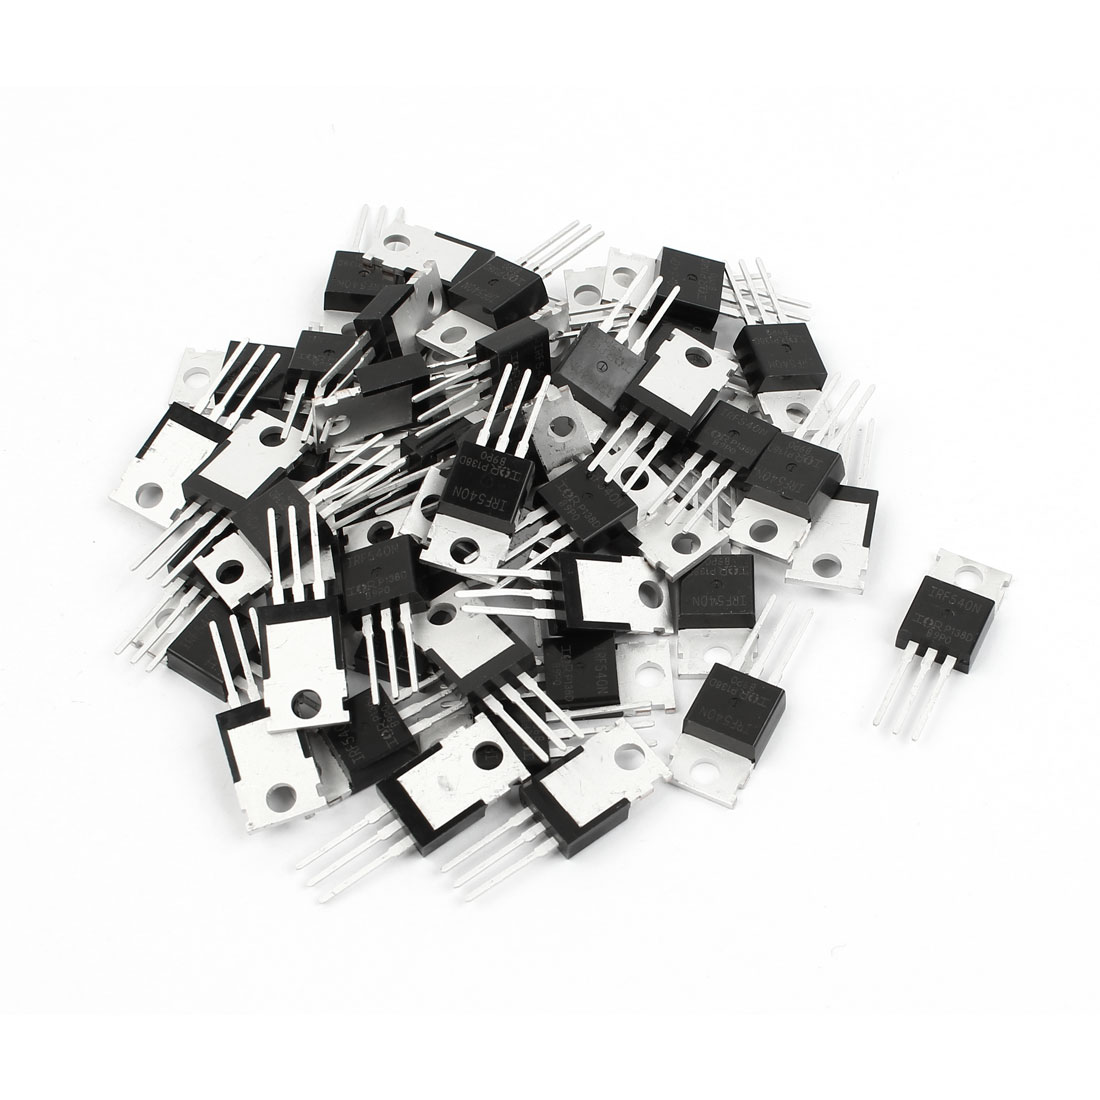 50 Pcs IRF540N TO-220 N-Channel Power MOSFET 100V 33A 0.04Ohm